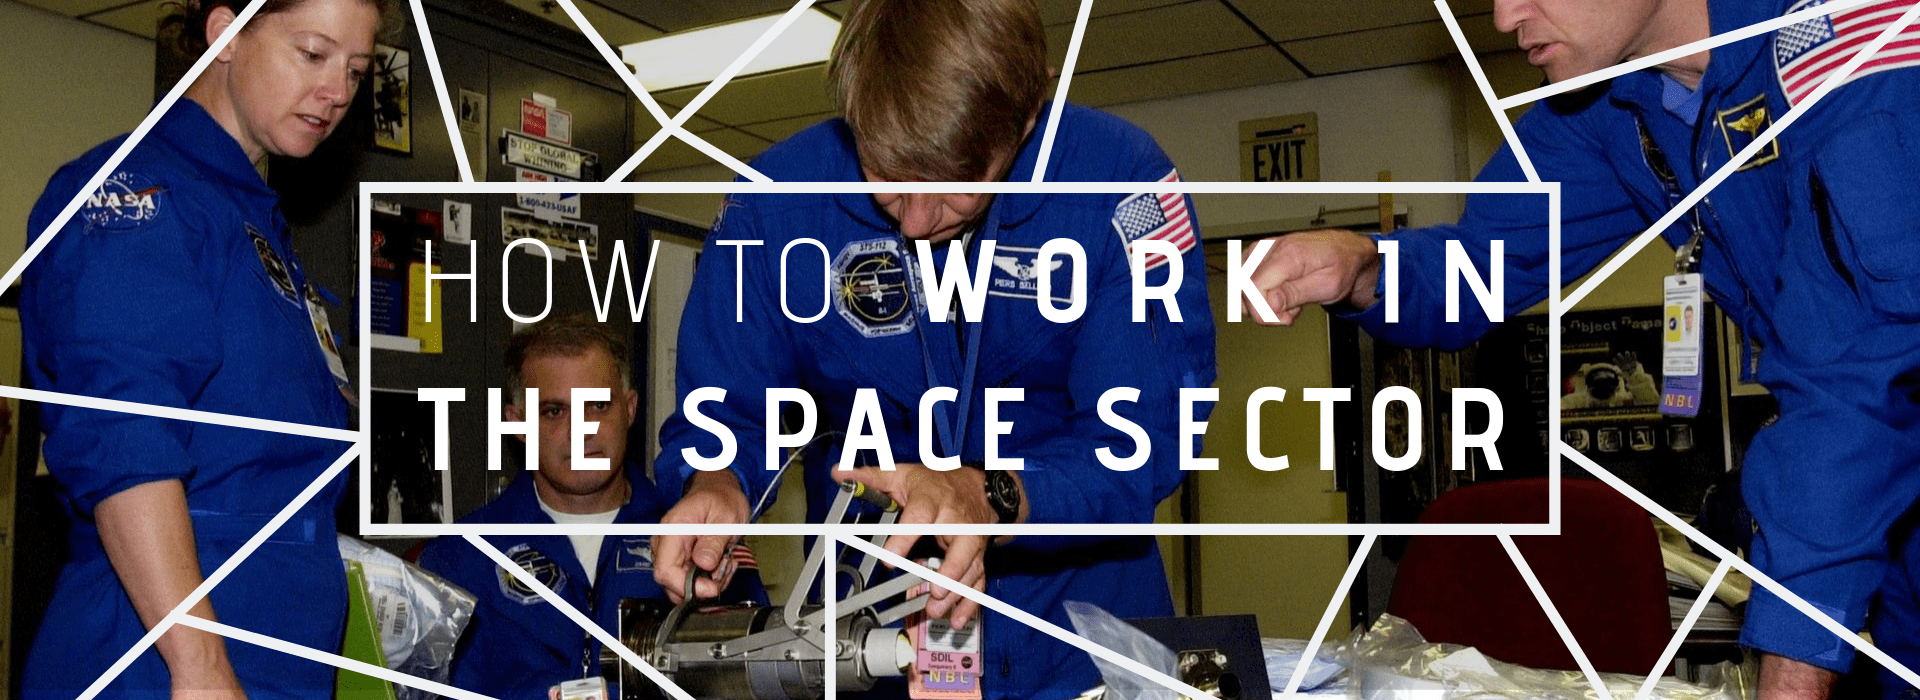 work in the space sector